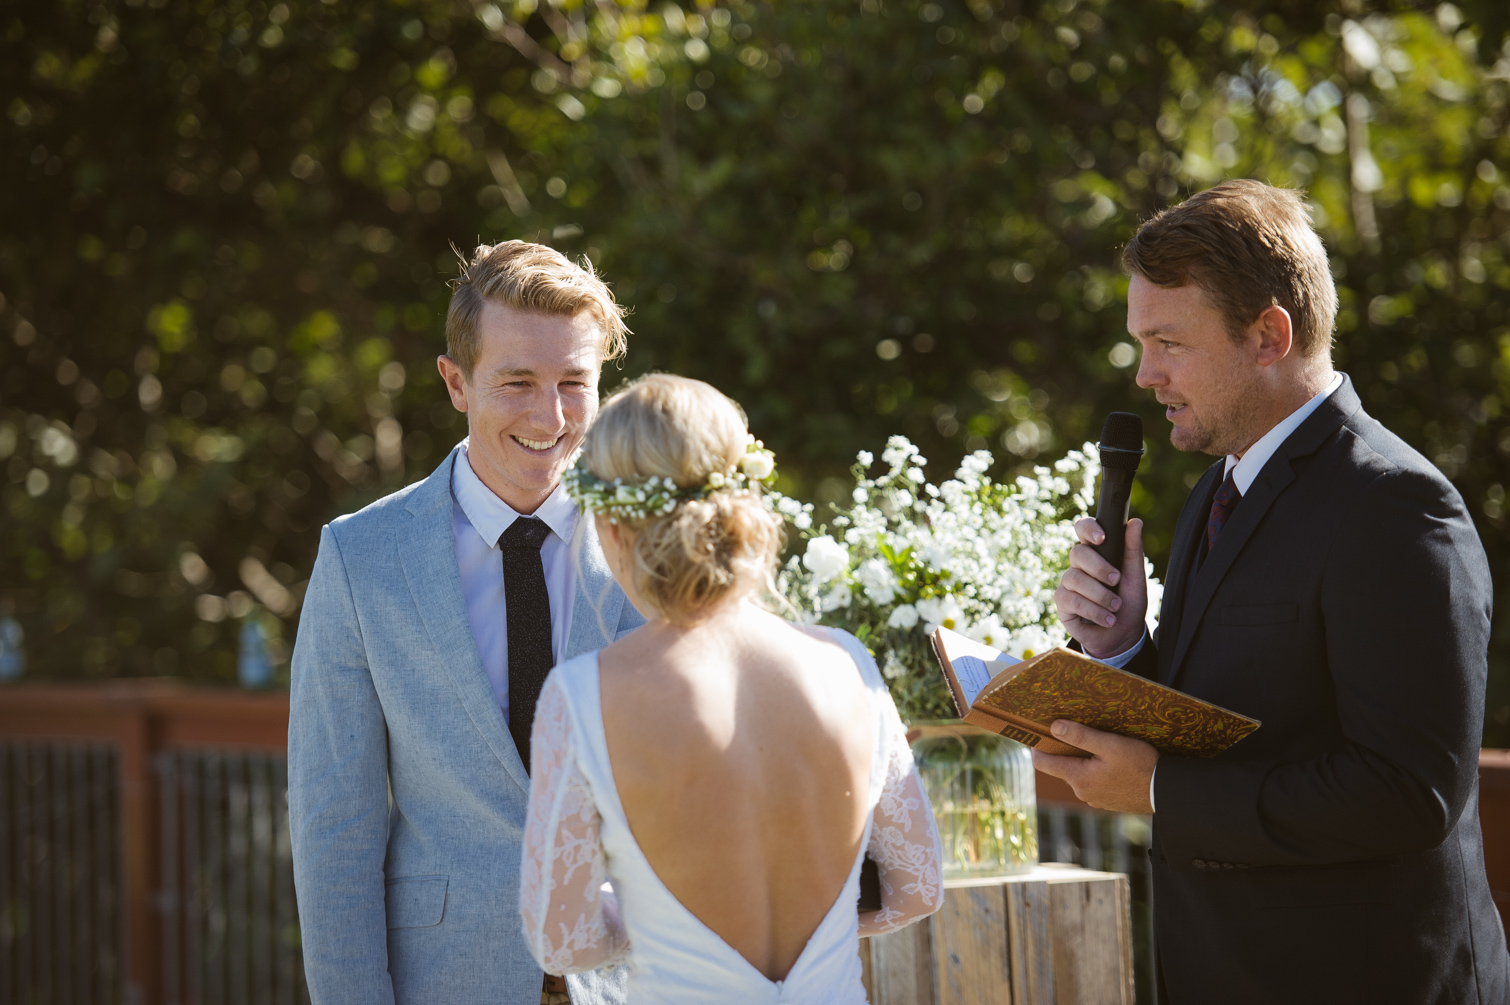 Nathan_Crouch_The_Institution_celebrant-524.jpg